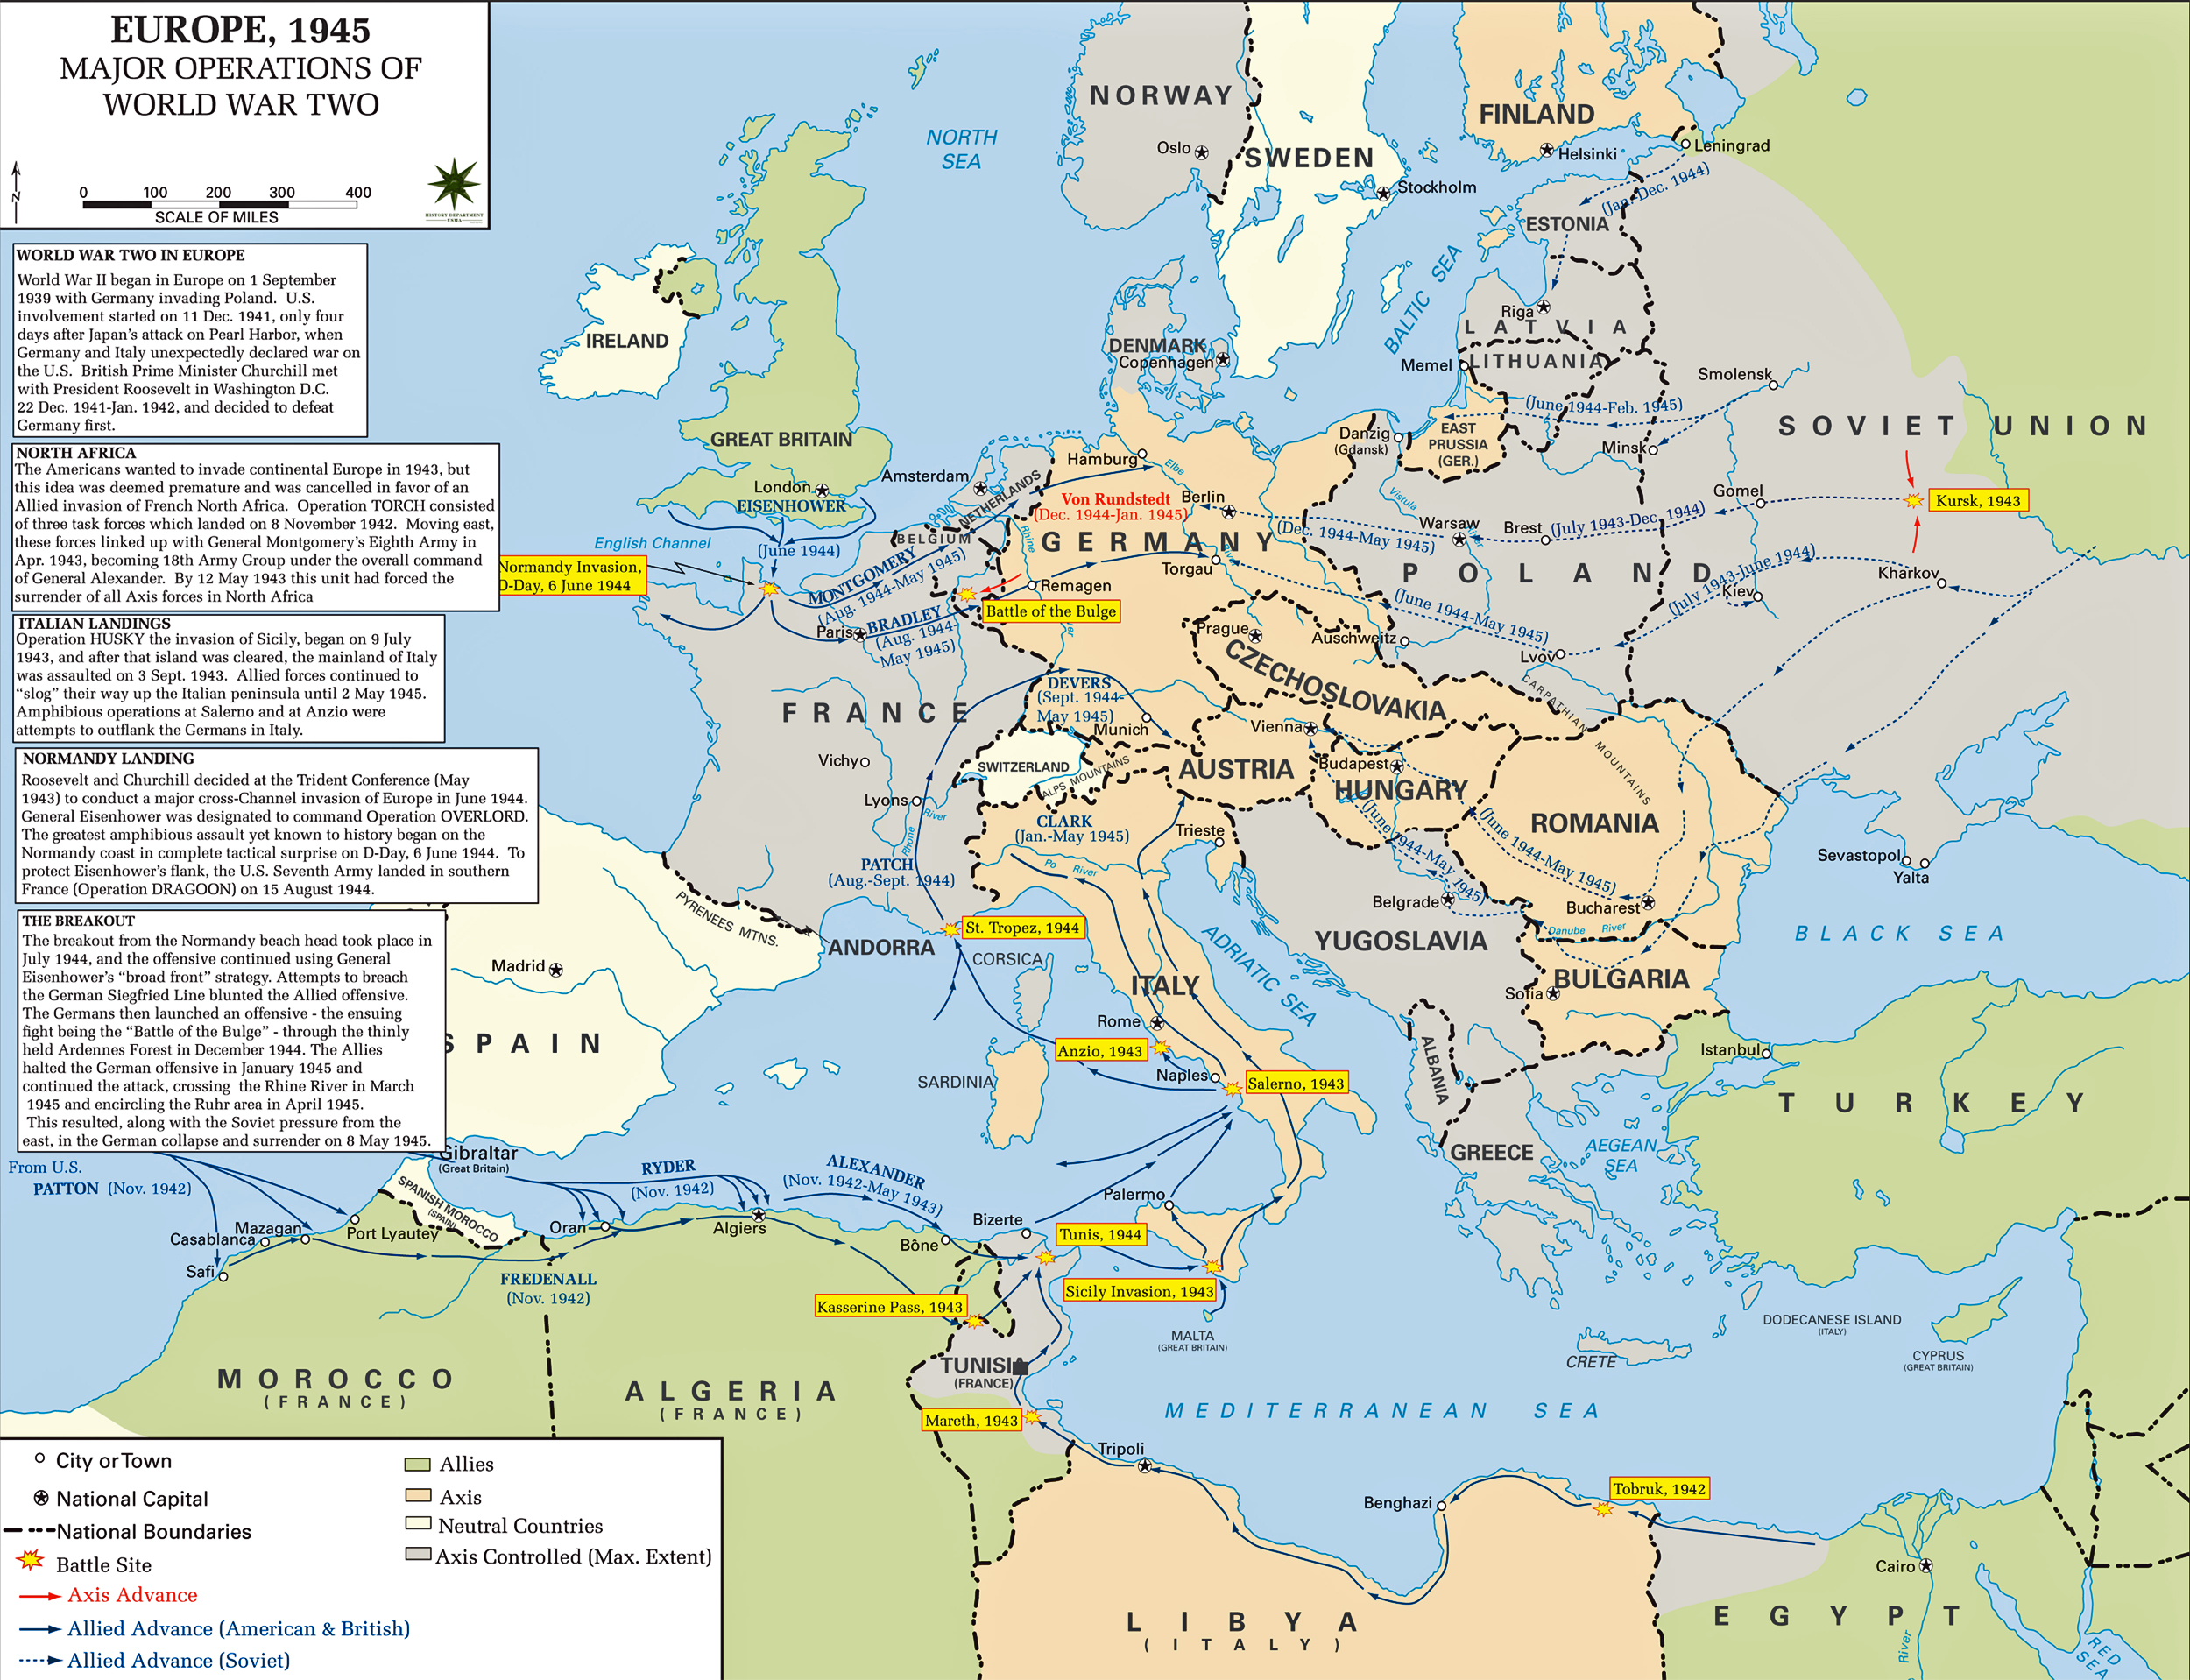 Map of WWII - Major Operations 1939-1945